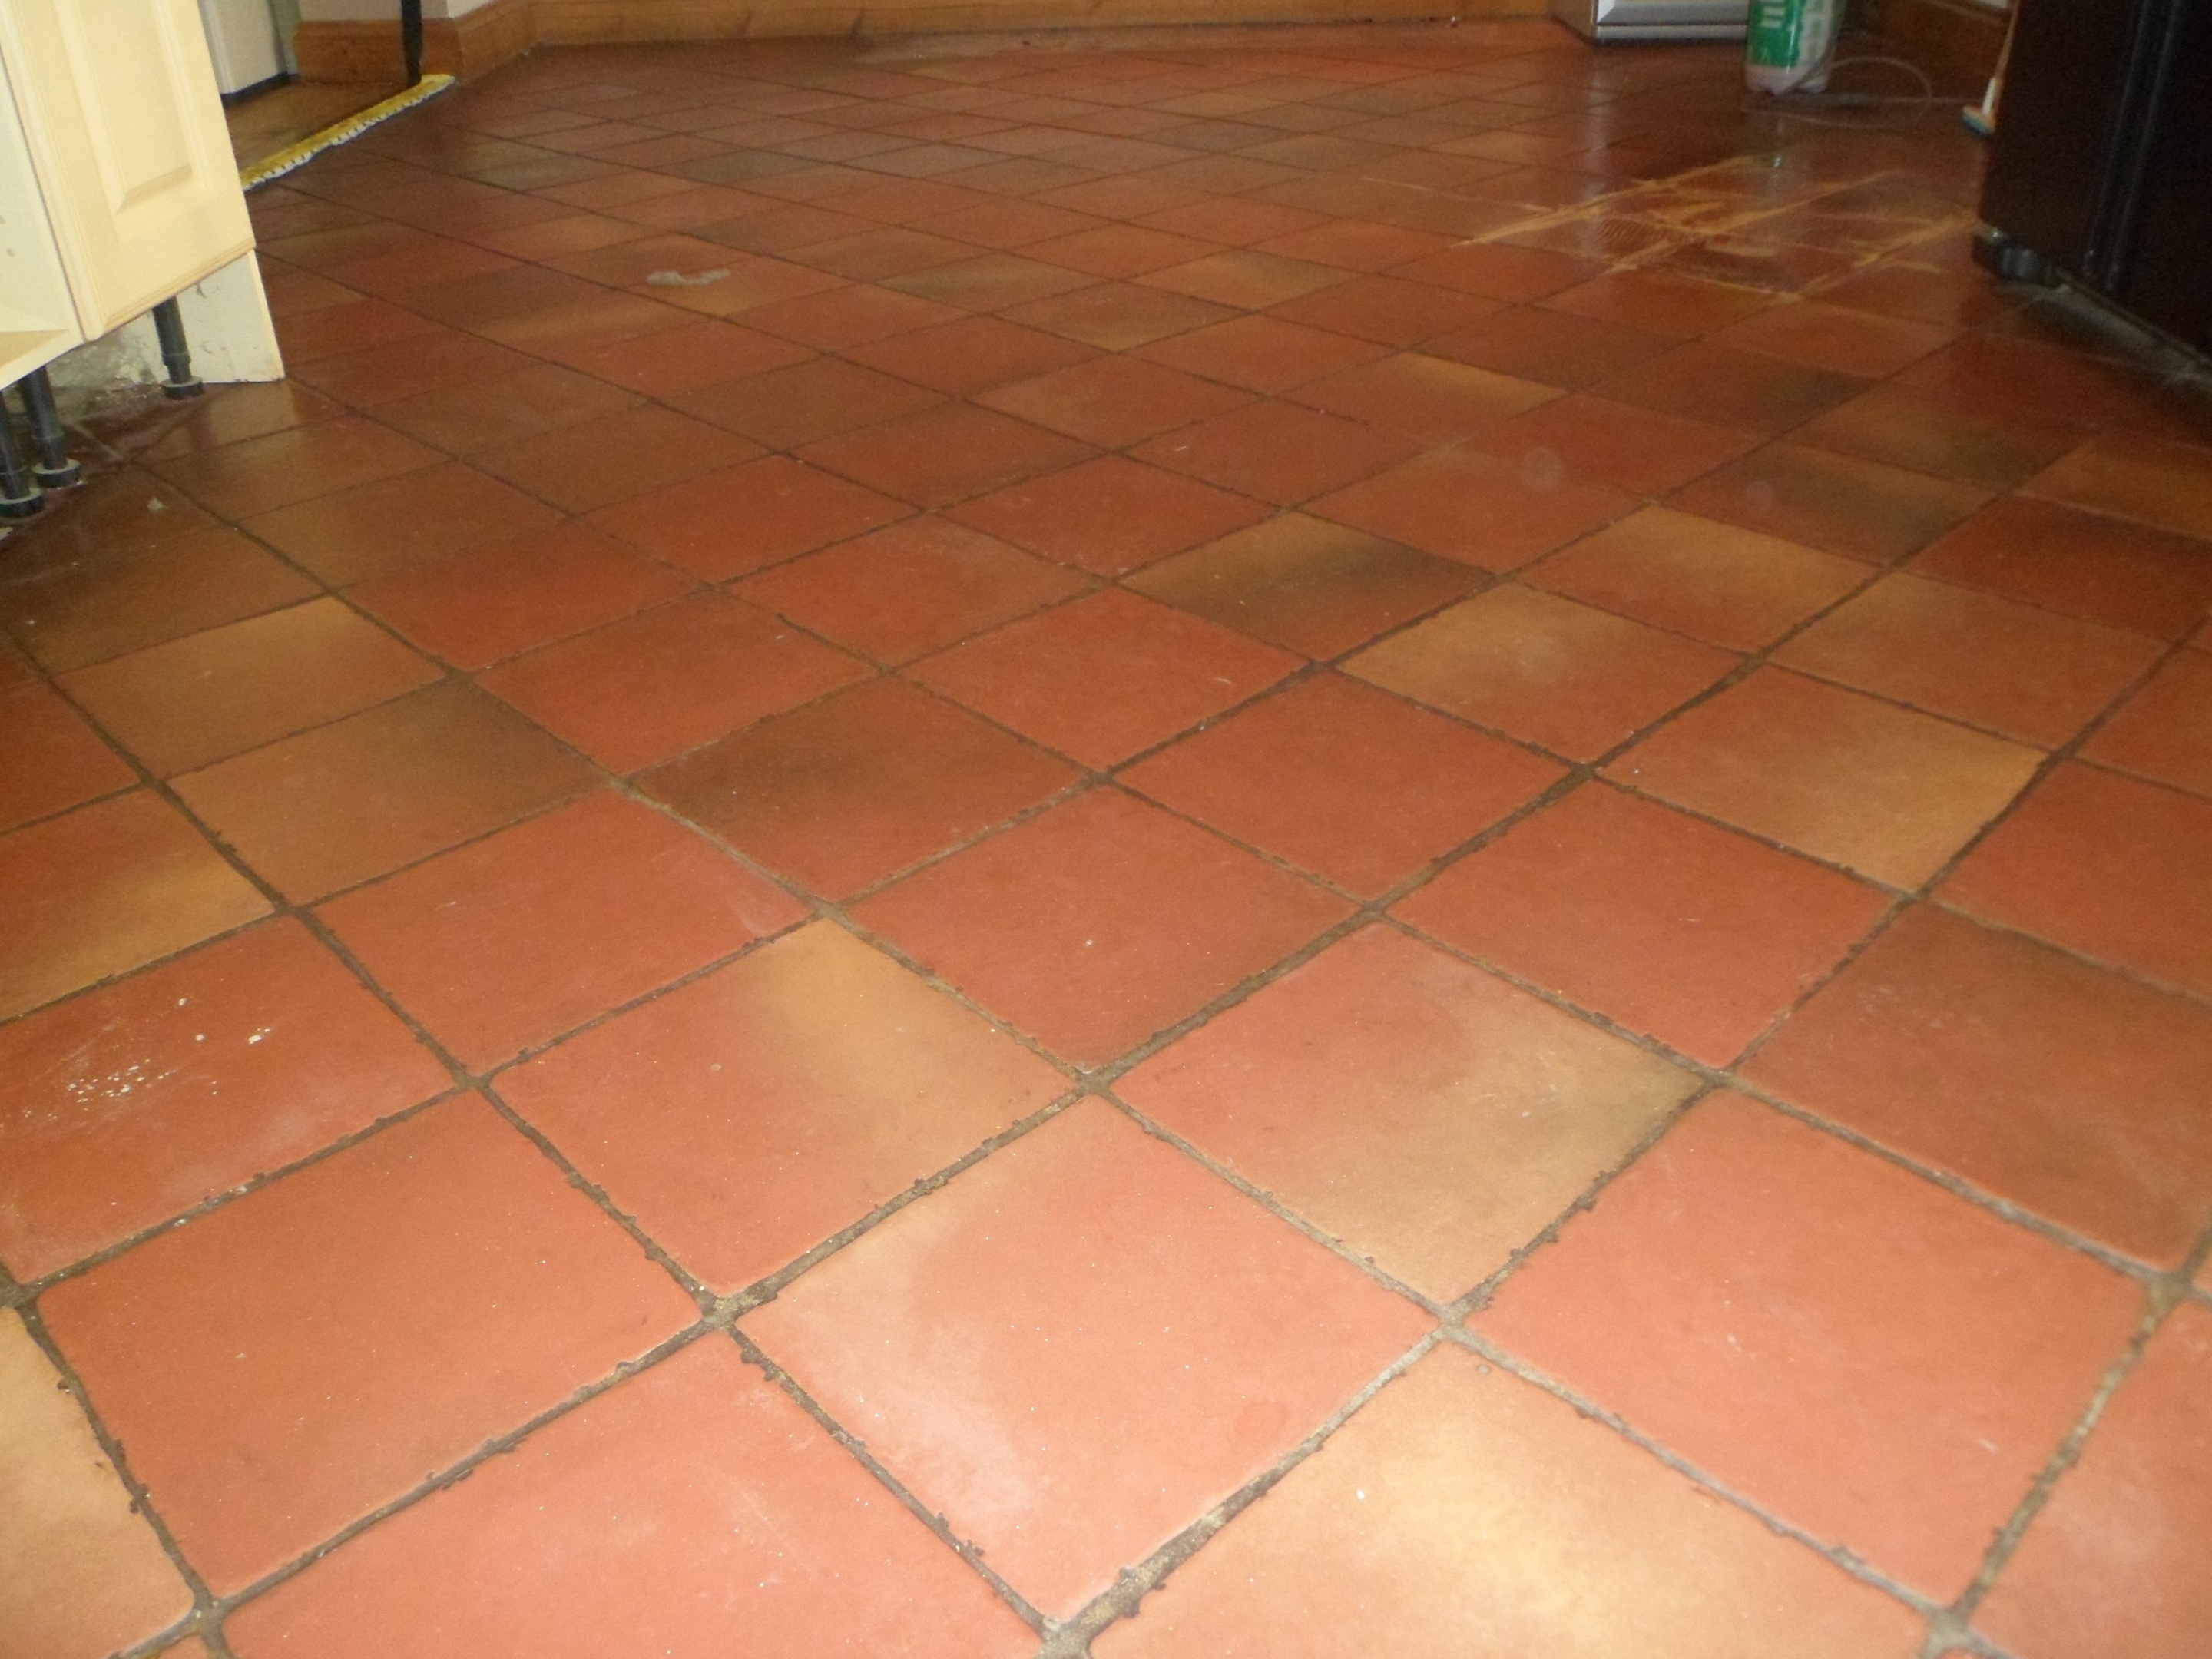 Terracotta Floor Before Work